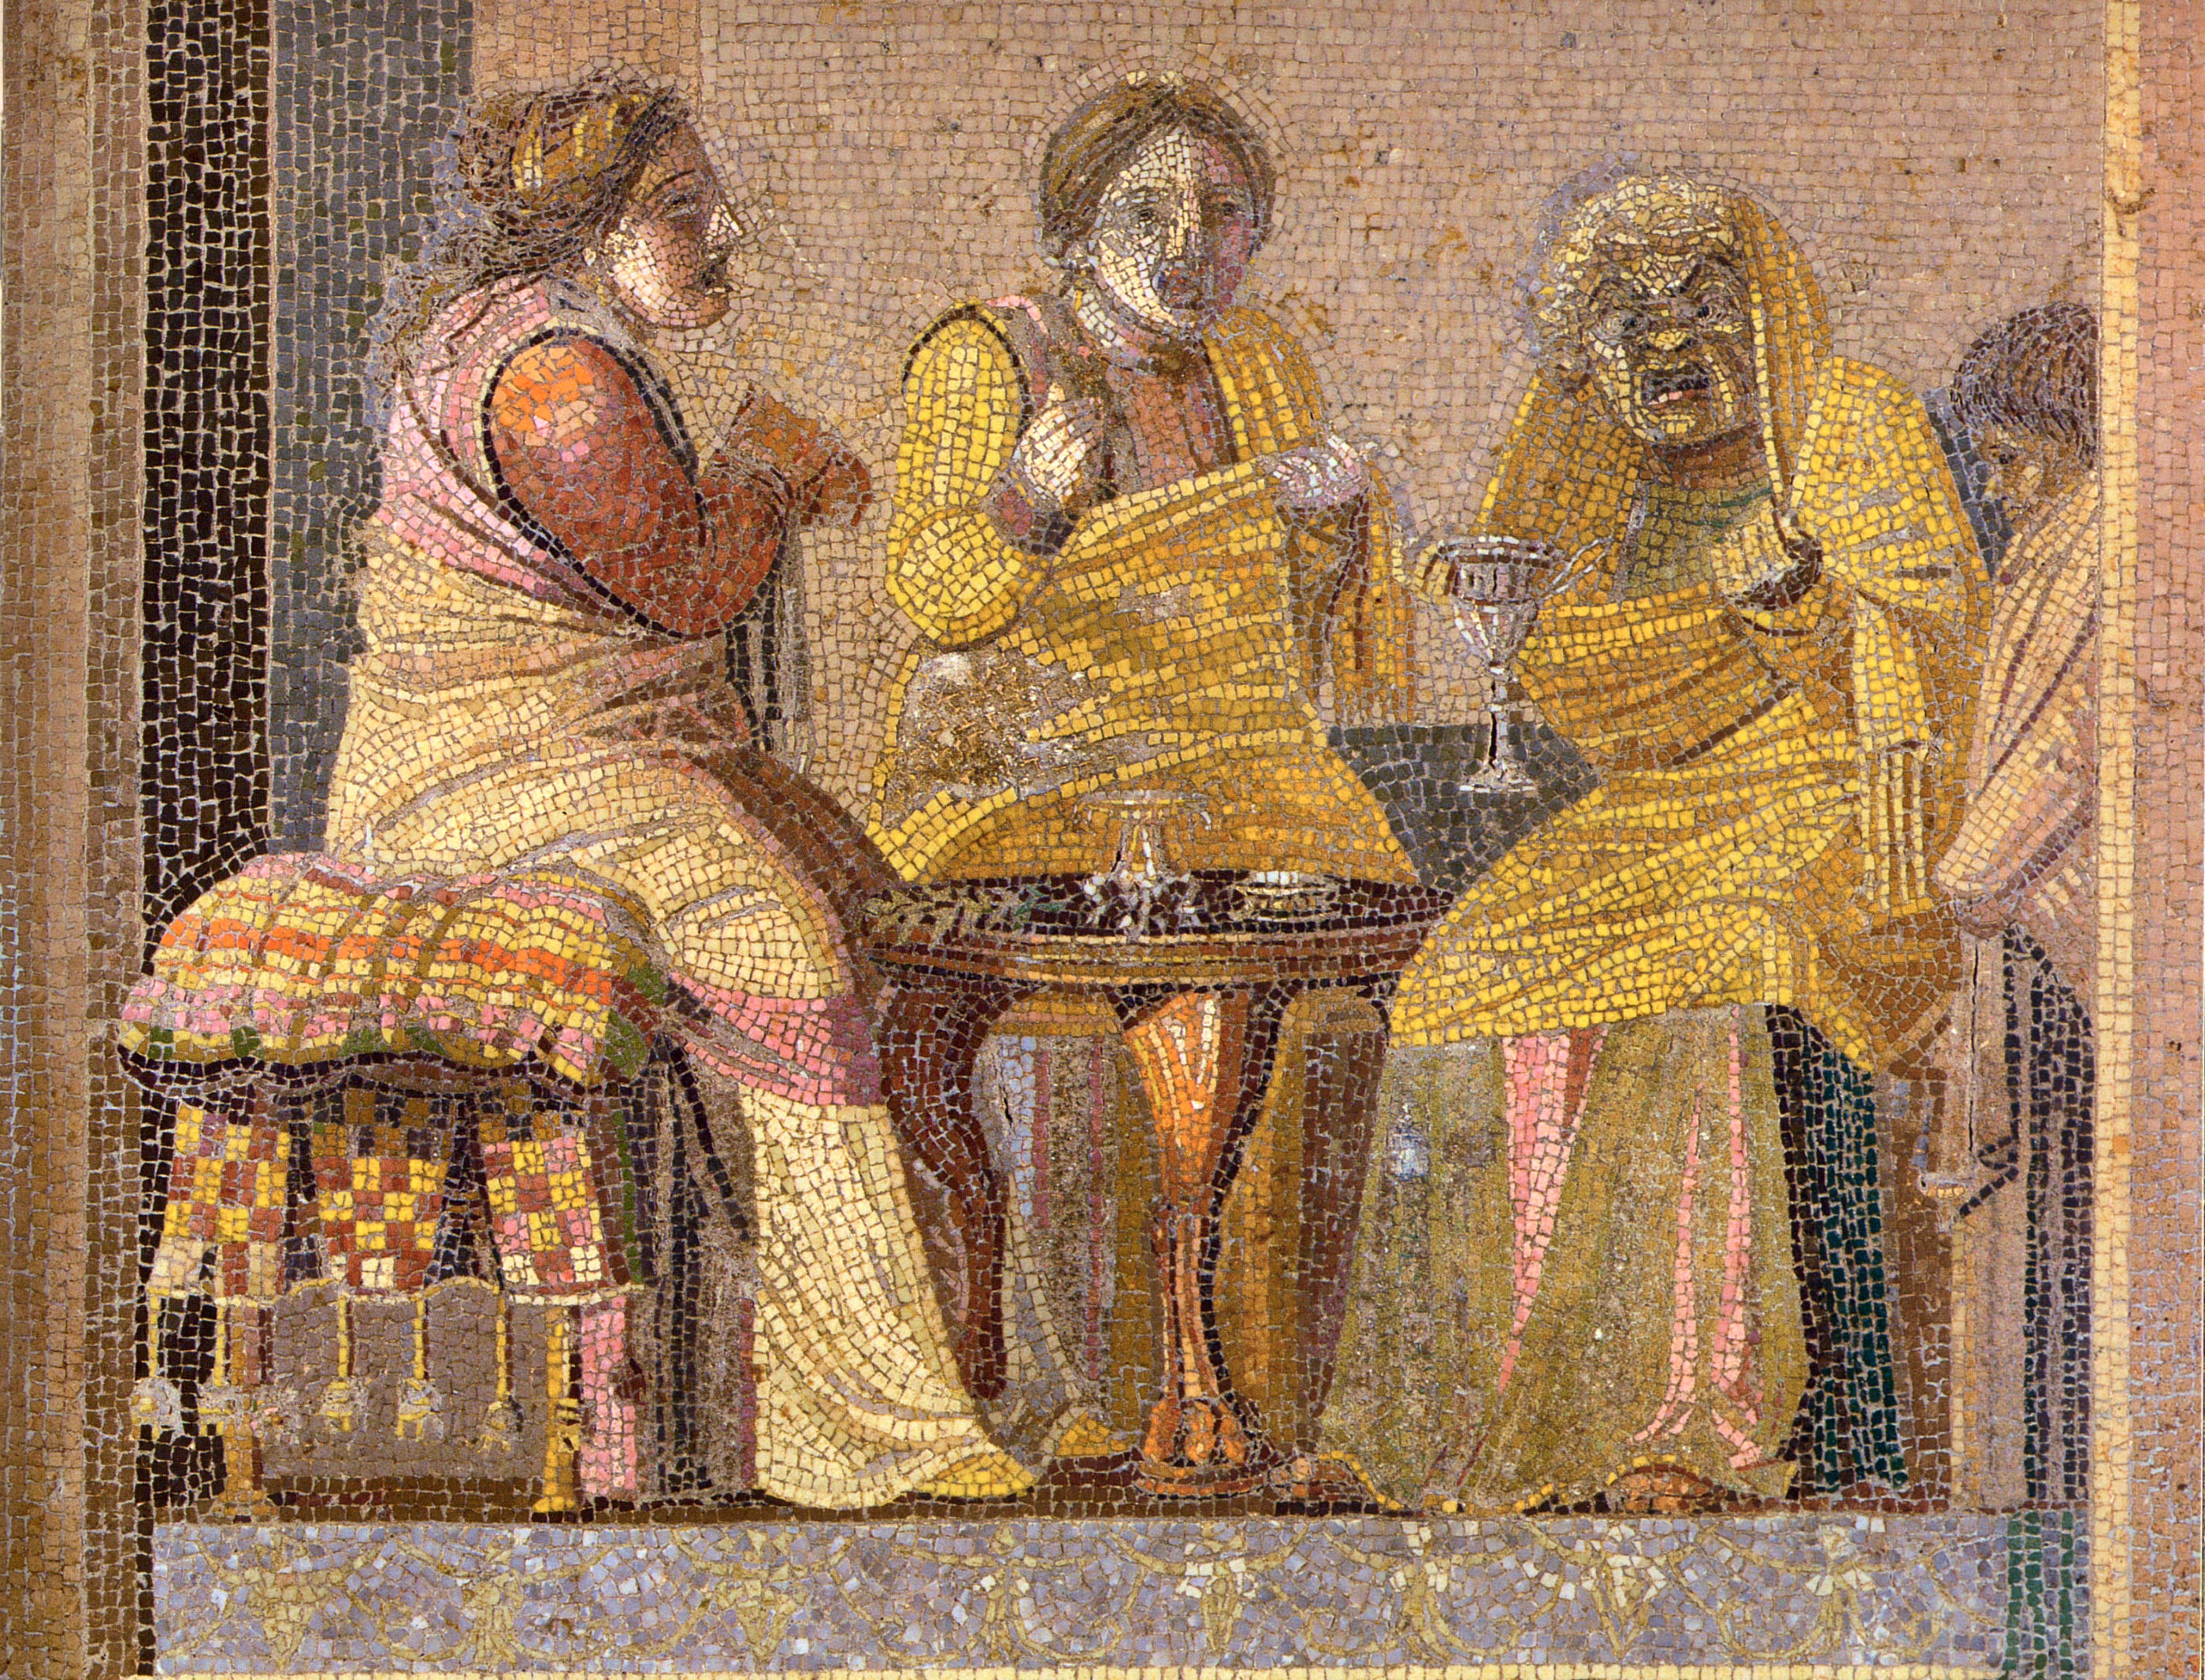 Mosaic from Pompeii depicting masked characters in a scene from a play: two women consult a witch.